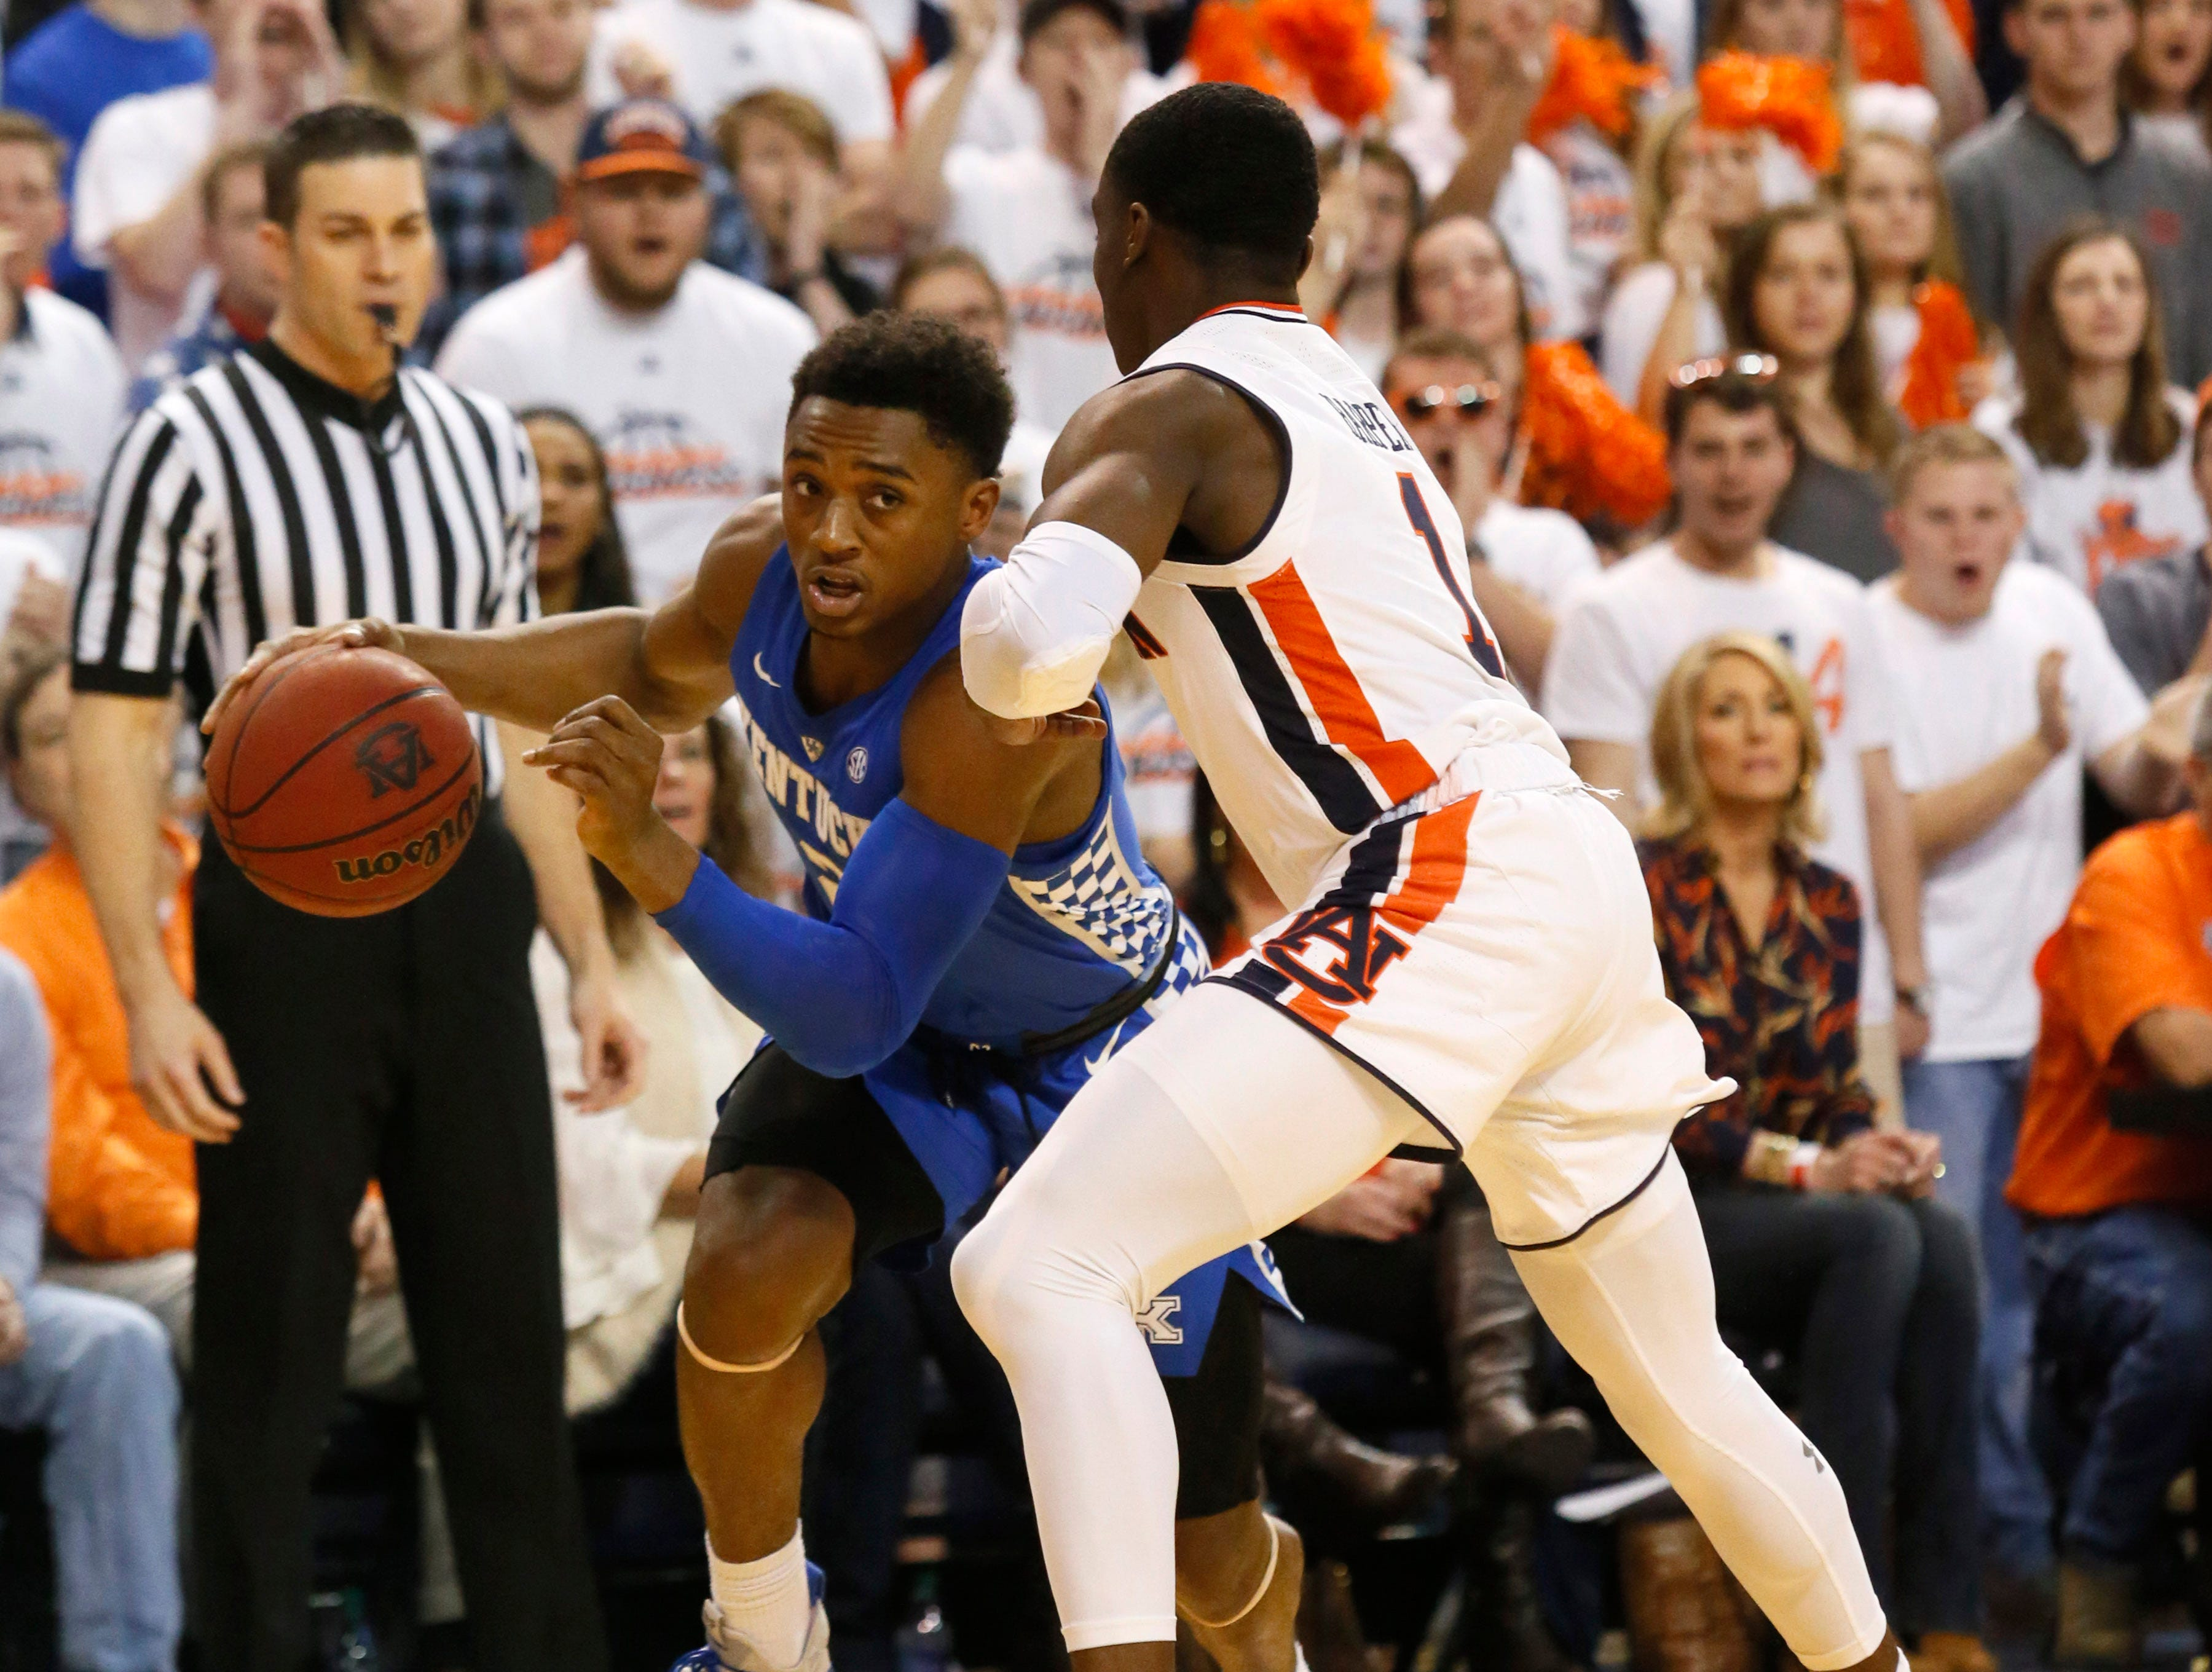 Jan 19, 2019; Auburn, AL, USA; Auburn Tigers guard Jared Harper (1) pressures Kentucky Wildcats guard Ashton Hagans (2) during the first half at Auburn Arena. Mandatory Credit: John Reed-USA TODAY Sports